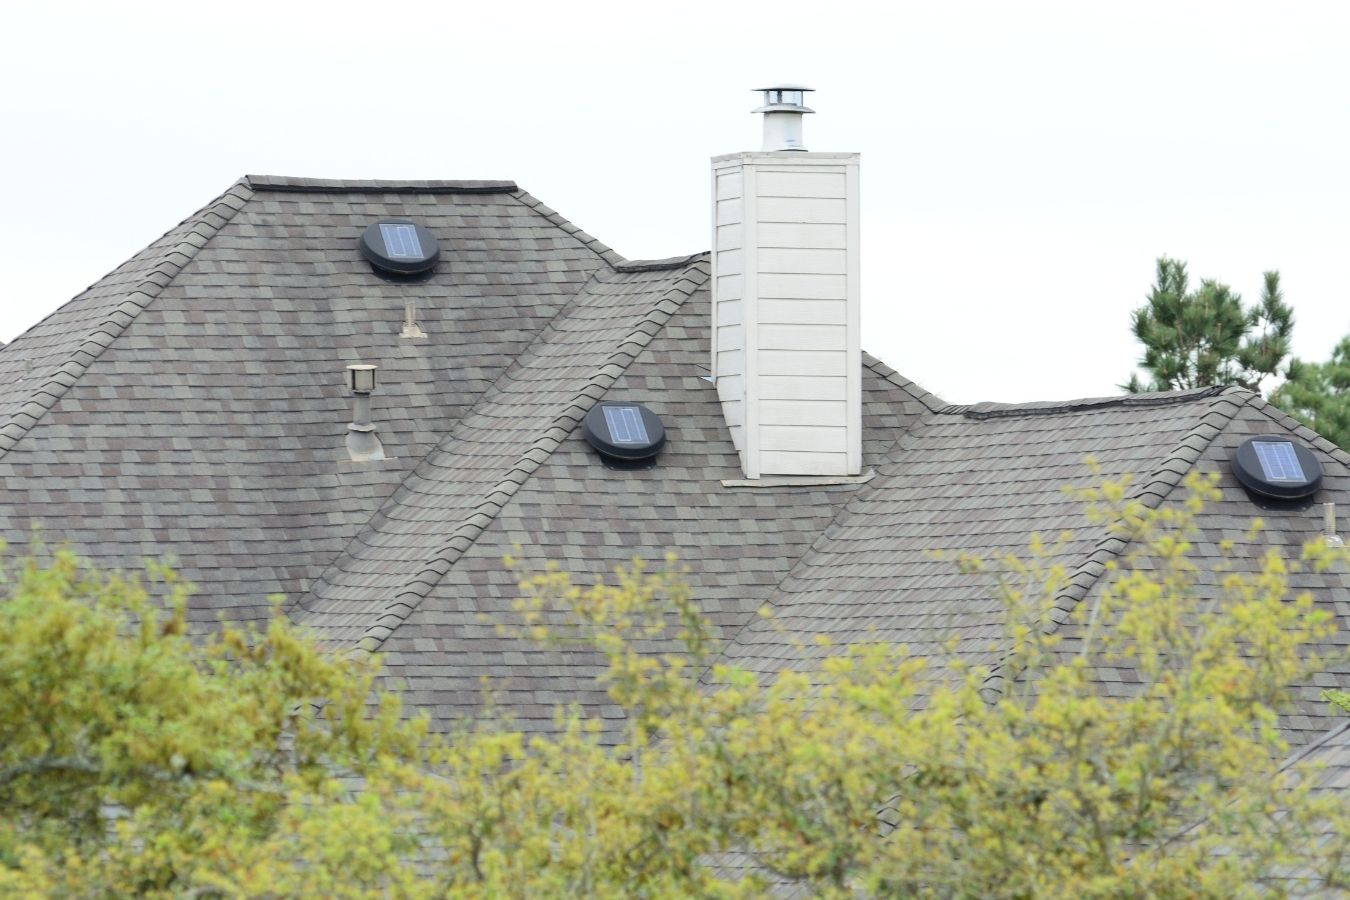 Image of solar attic vents, solar attic fans on the roof of a house